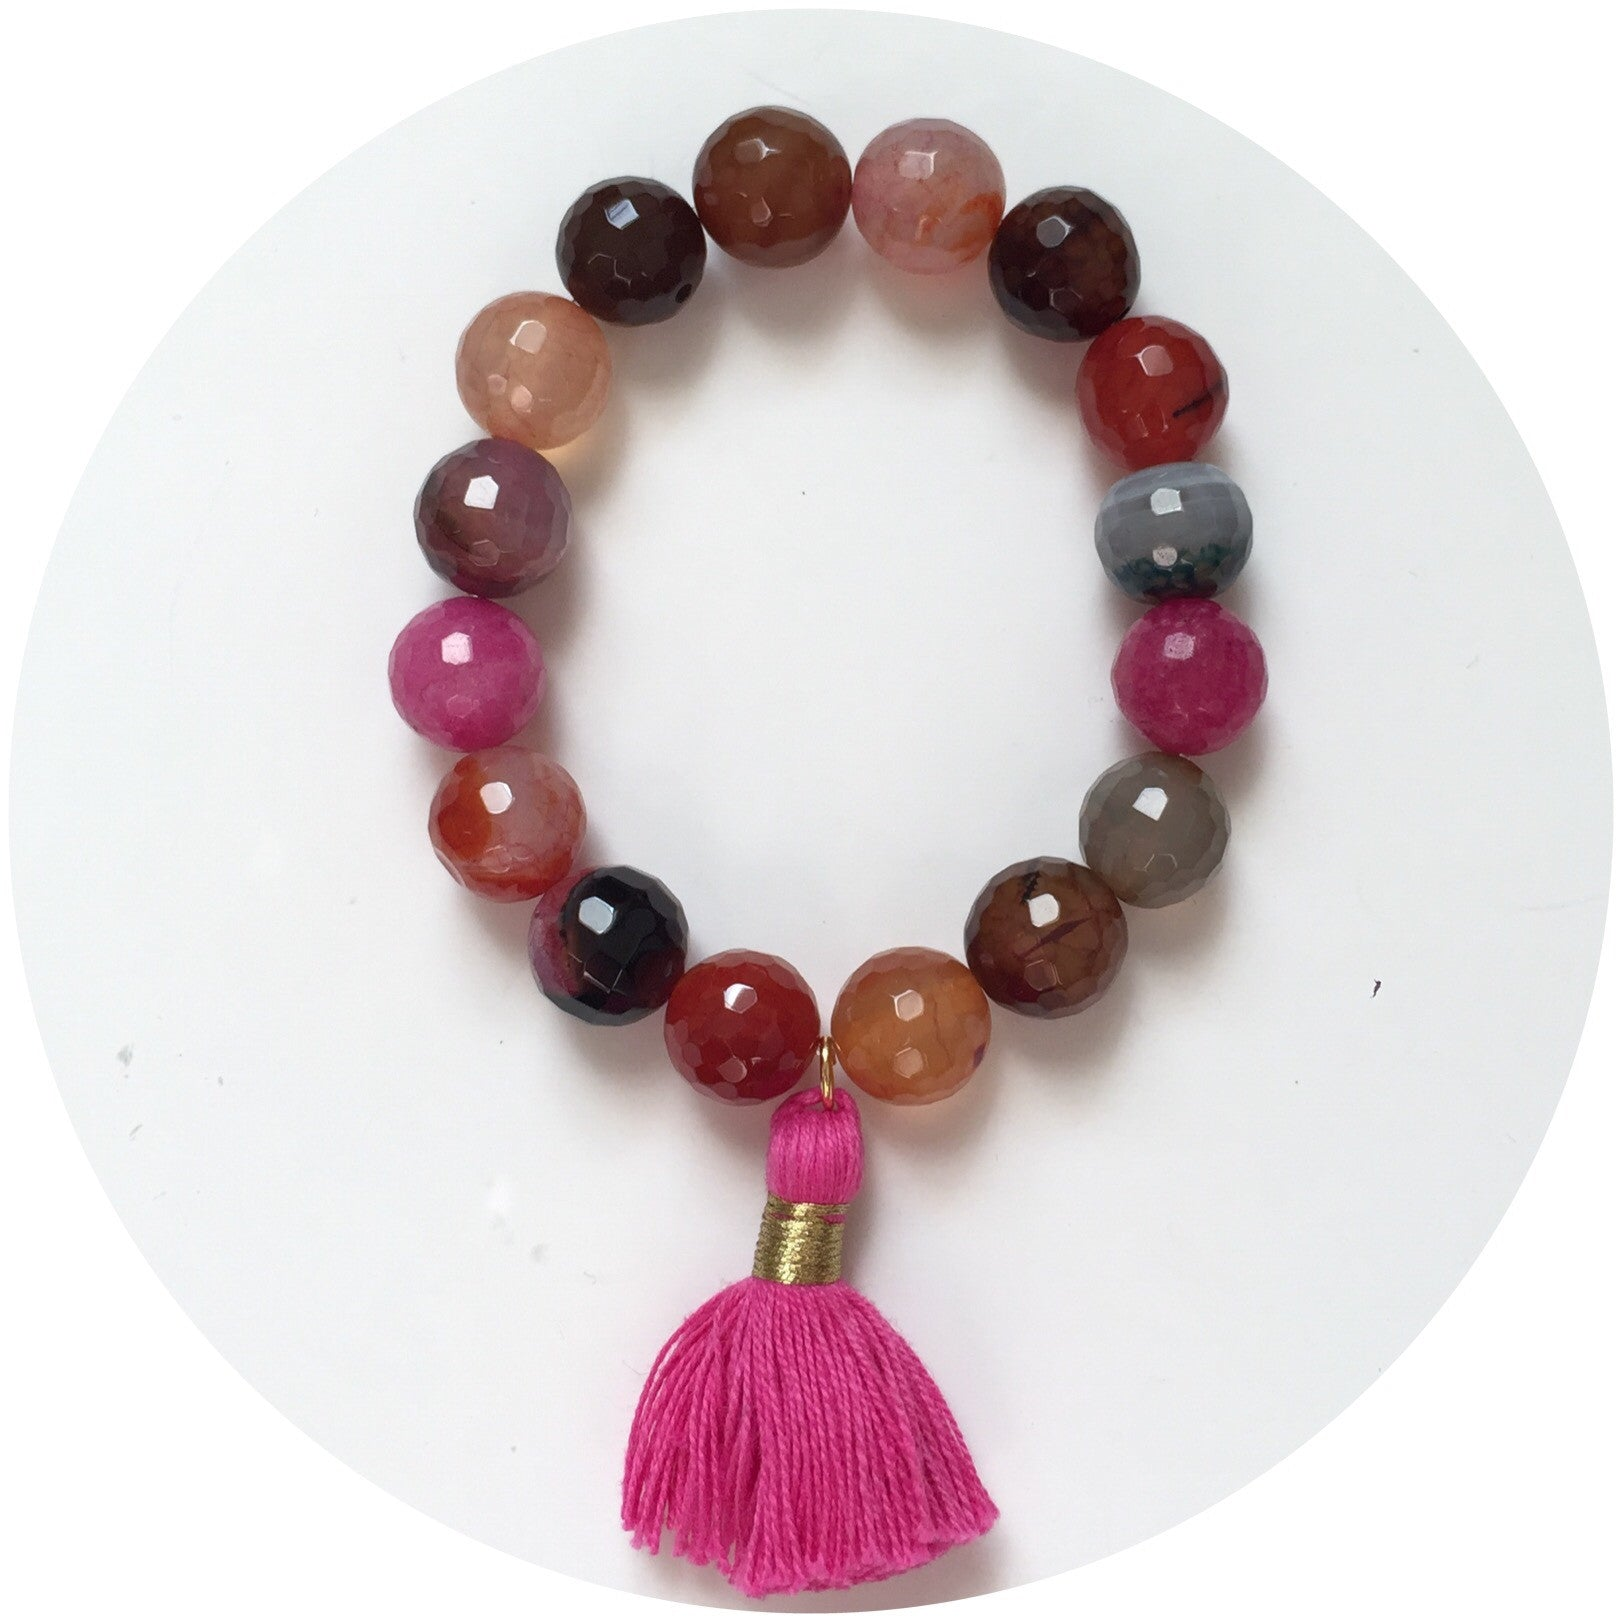 Multicolor Agate with Raspberry Tassel - Oriana Lamarca LLC